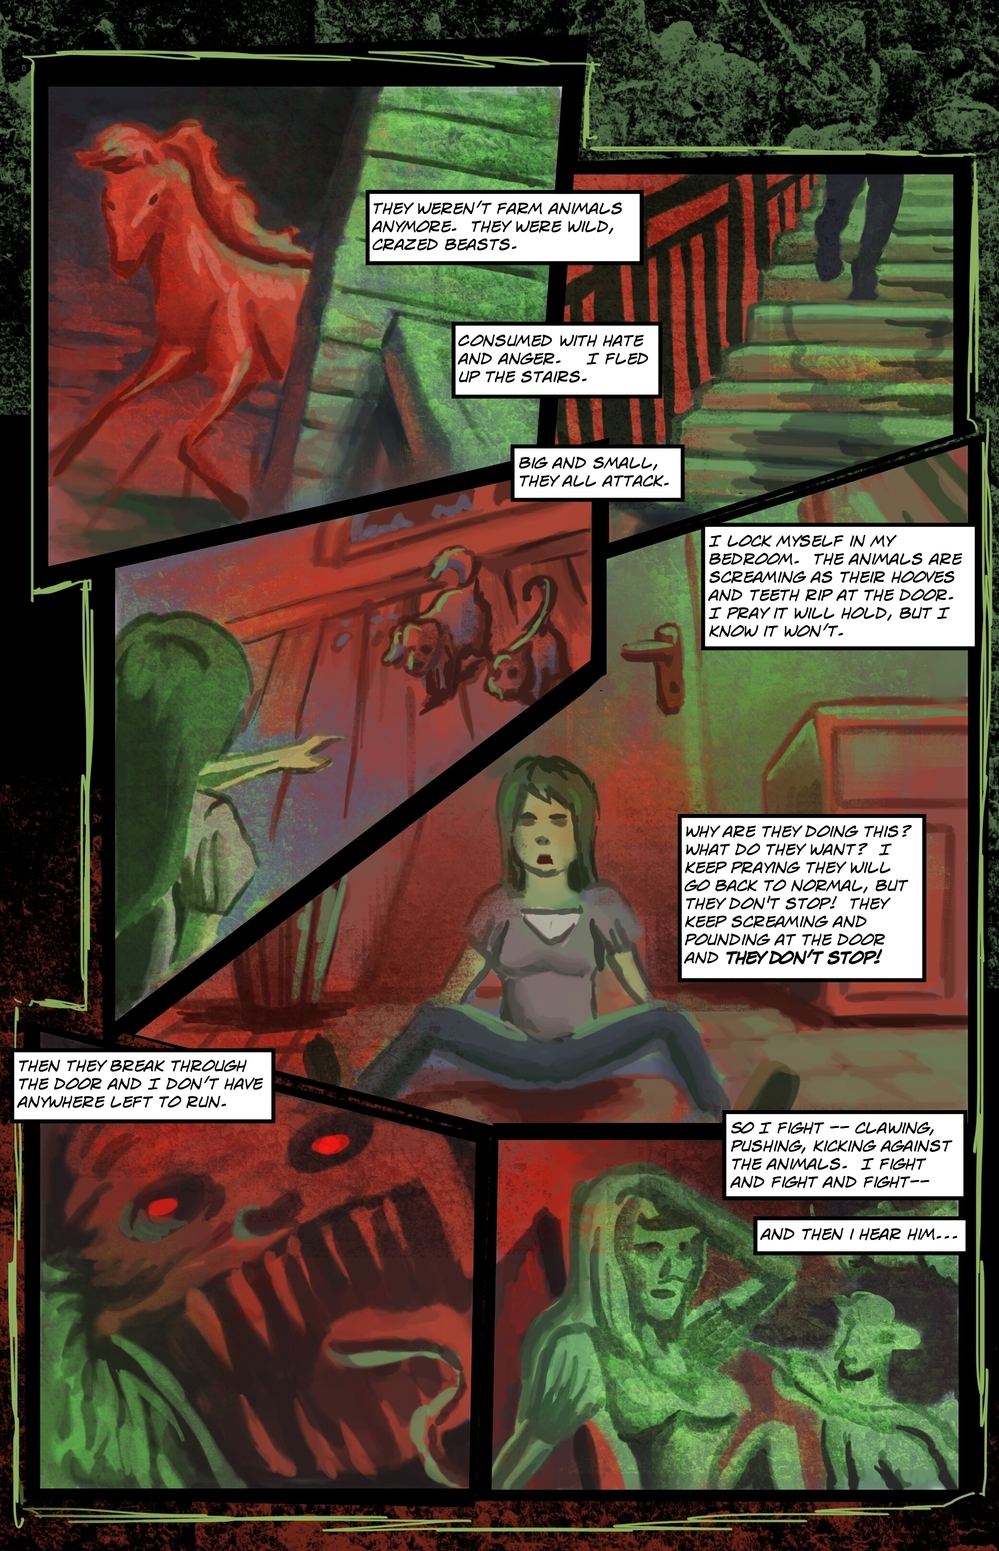 BEASTS page 5 - story 5 in The Book of Lies